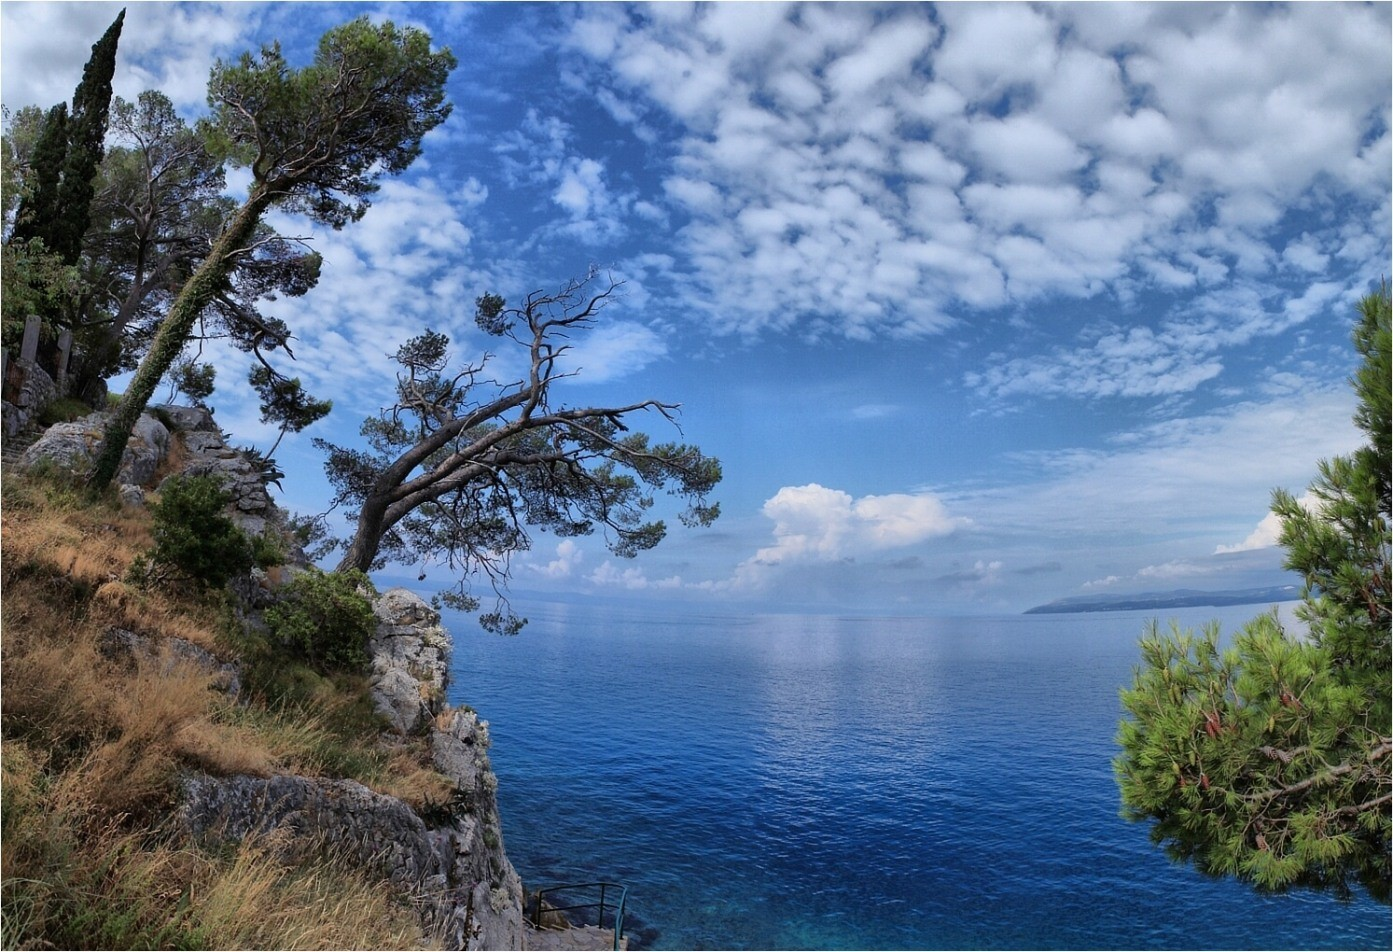 Sea and overcast | sea, overcast, cliff, spruce